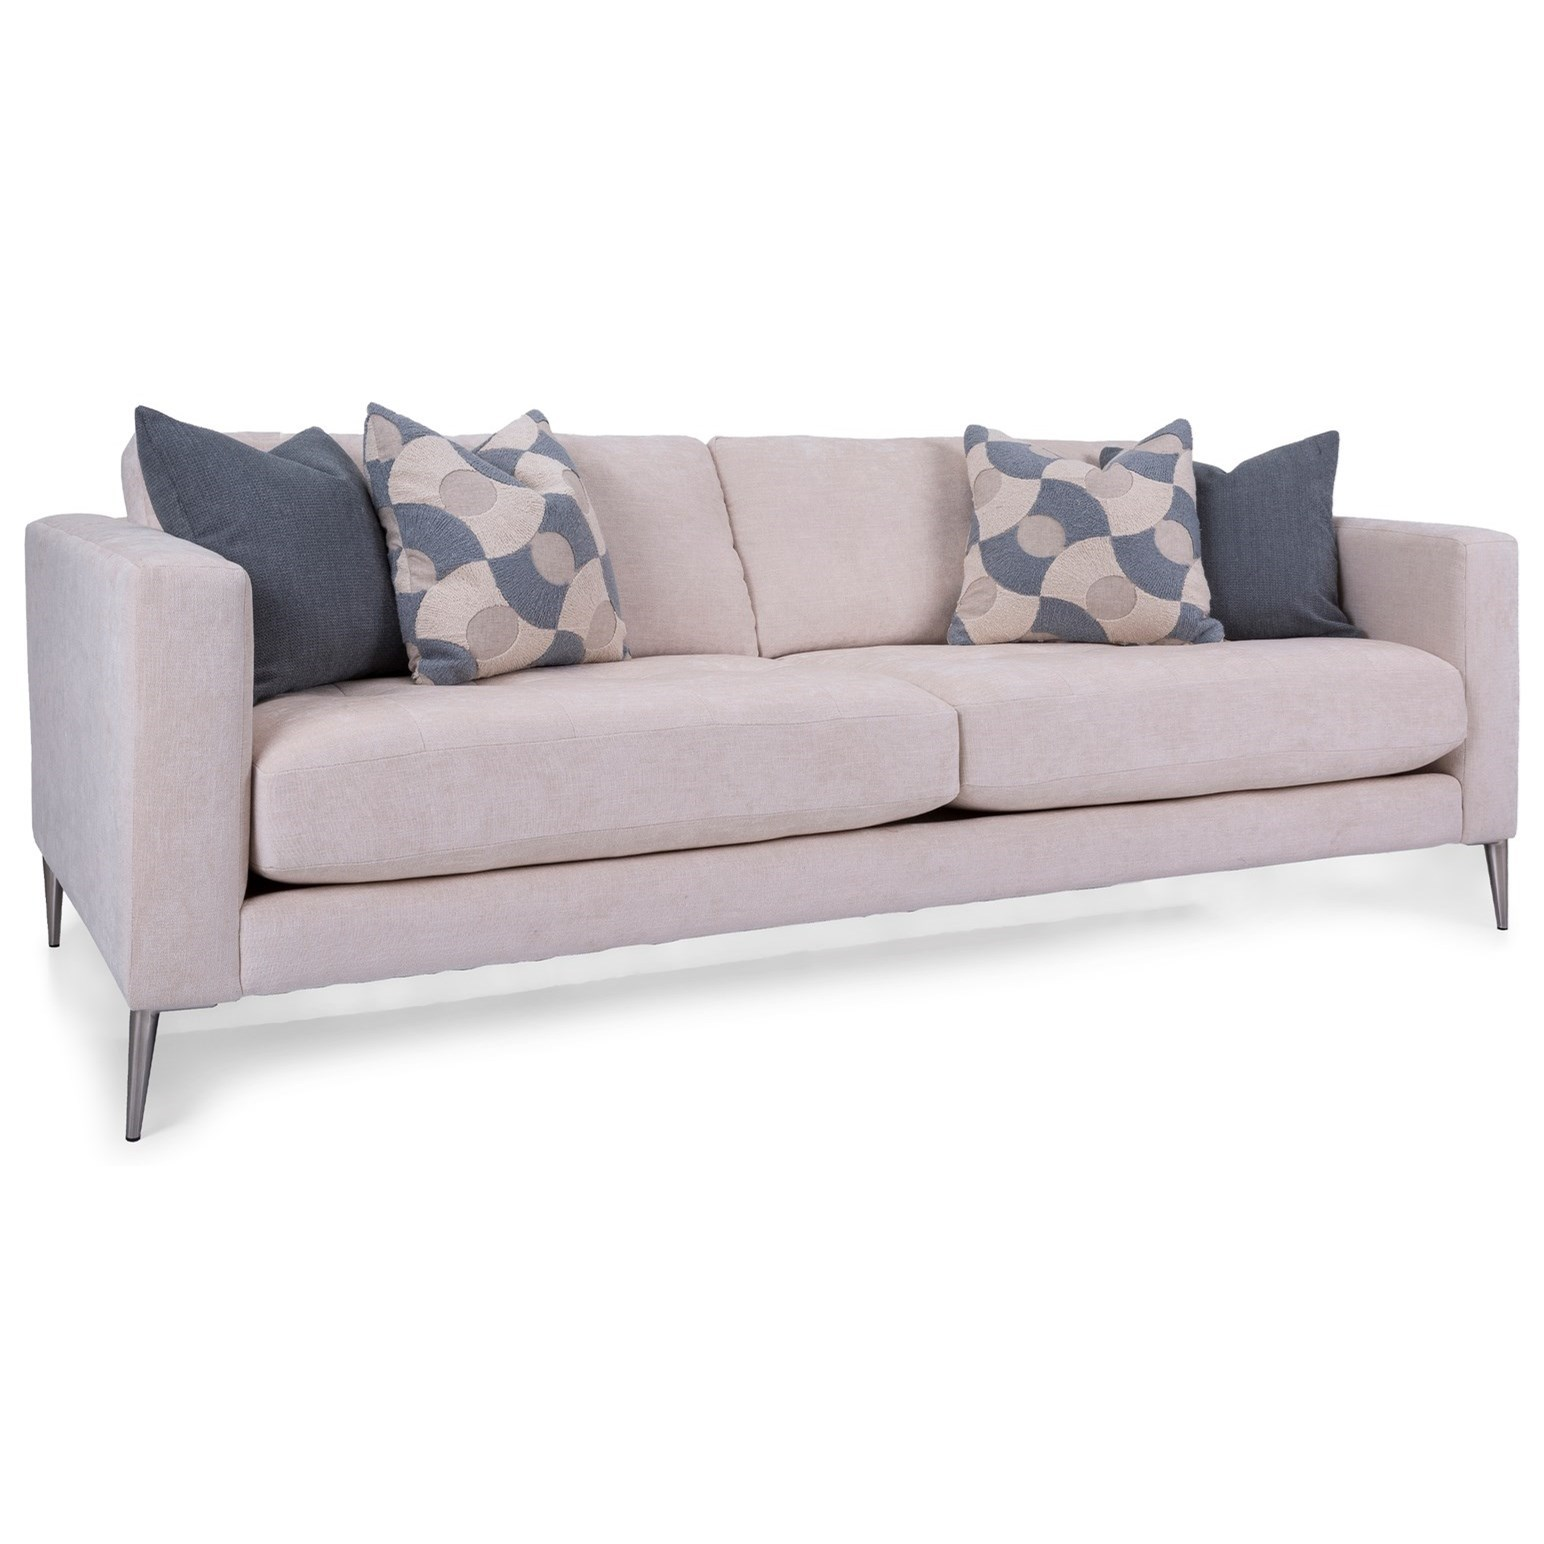 3795 Loveseat by Taelor Designs at Bennett's Furniture and Mattresses